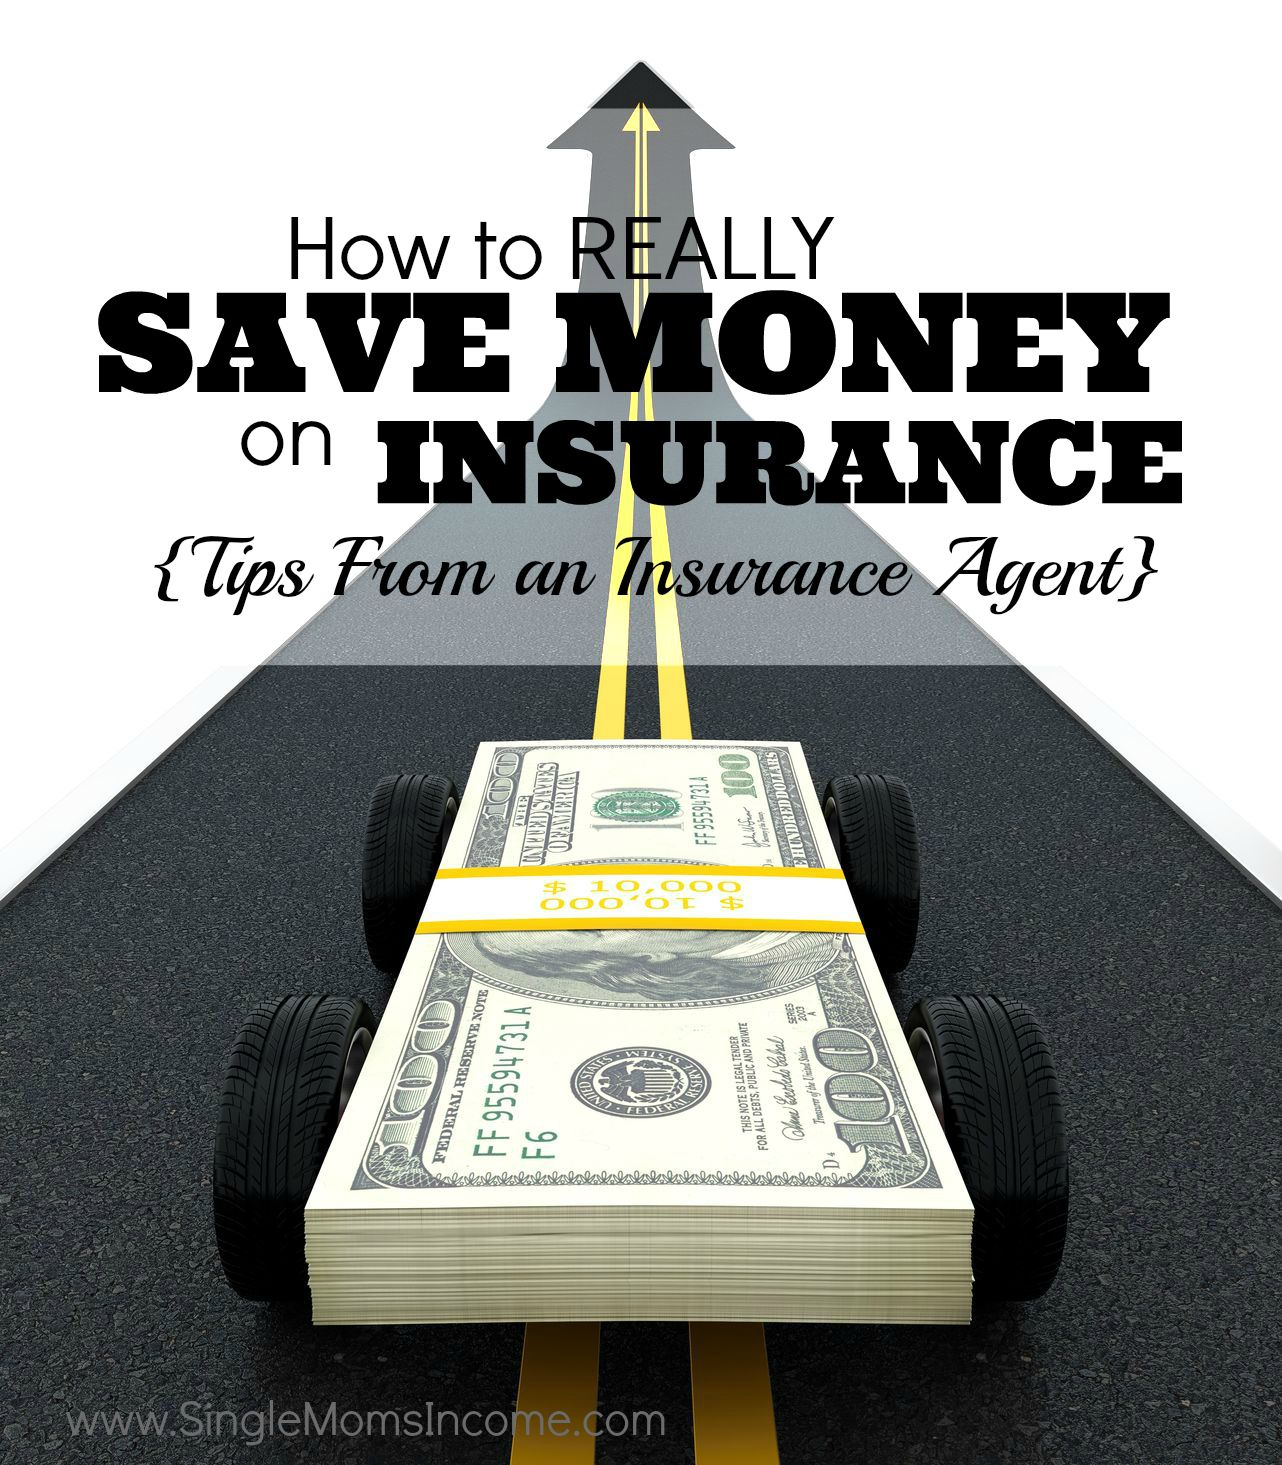 Please inbox me if you want to save some money on your